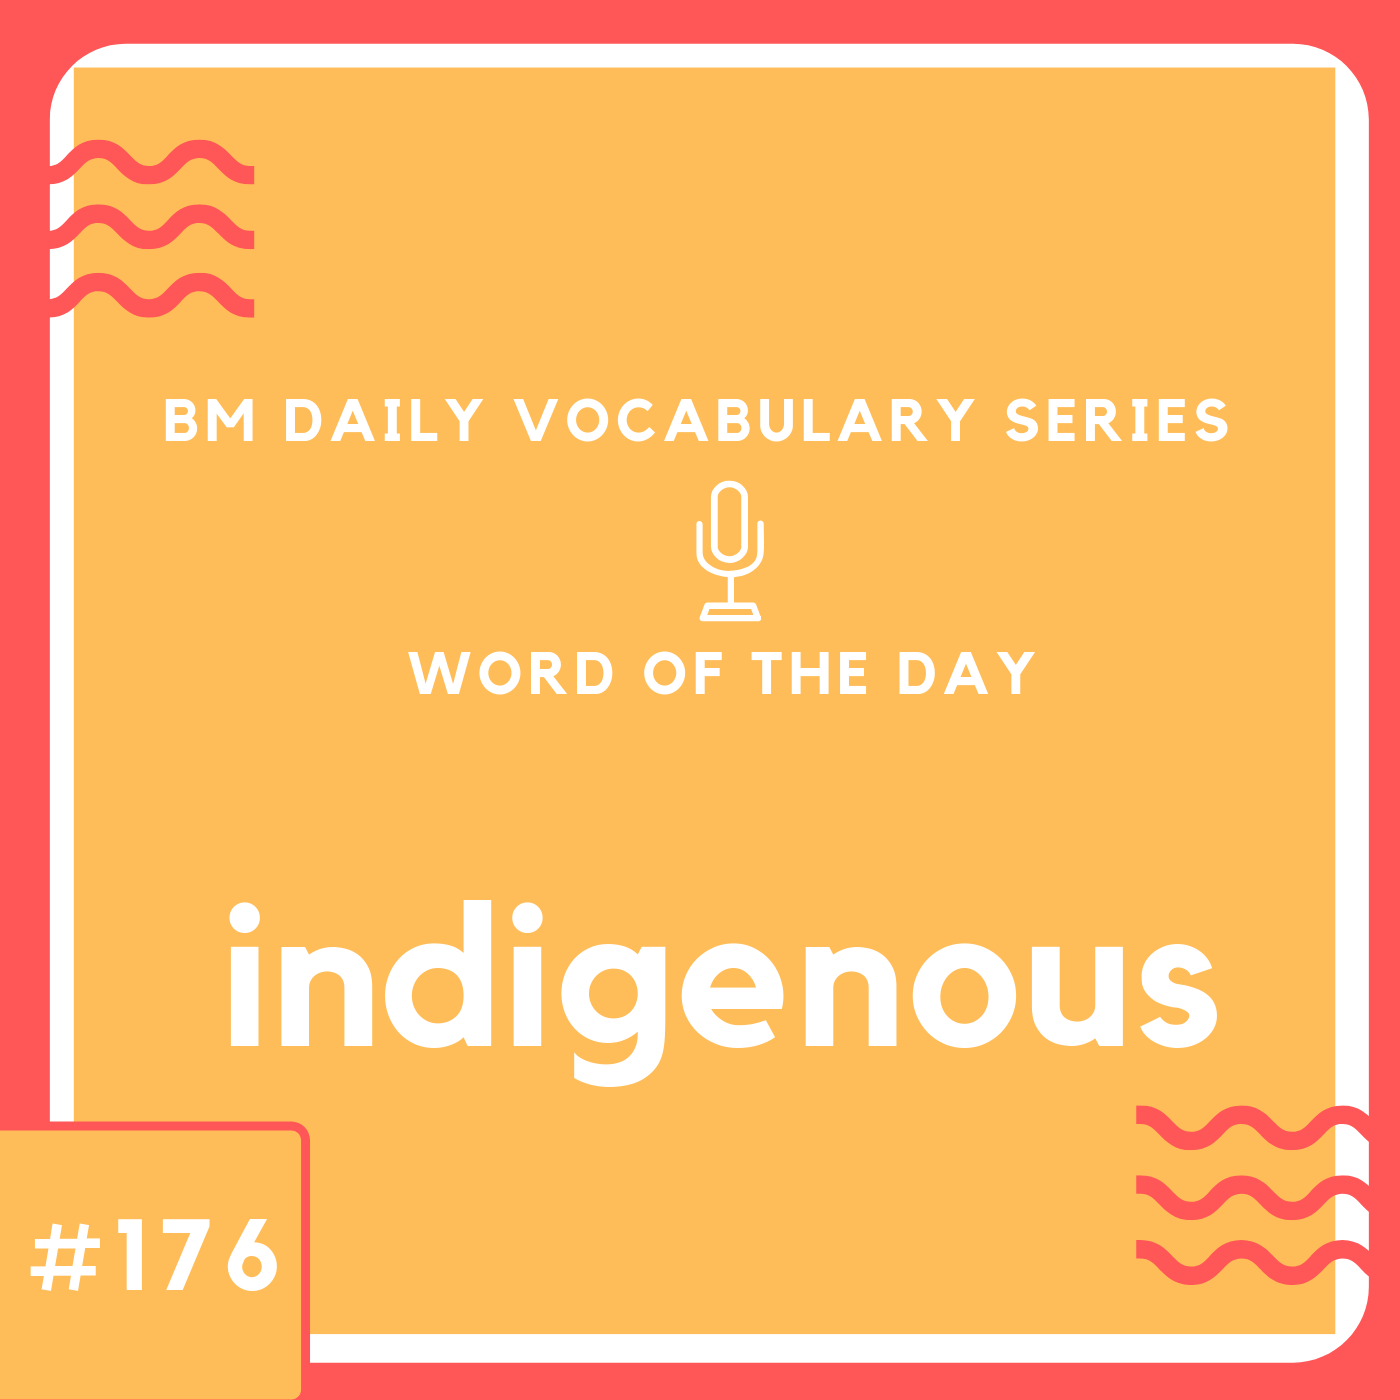 200 BM Daily Vocabulary #176 | indigenous